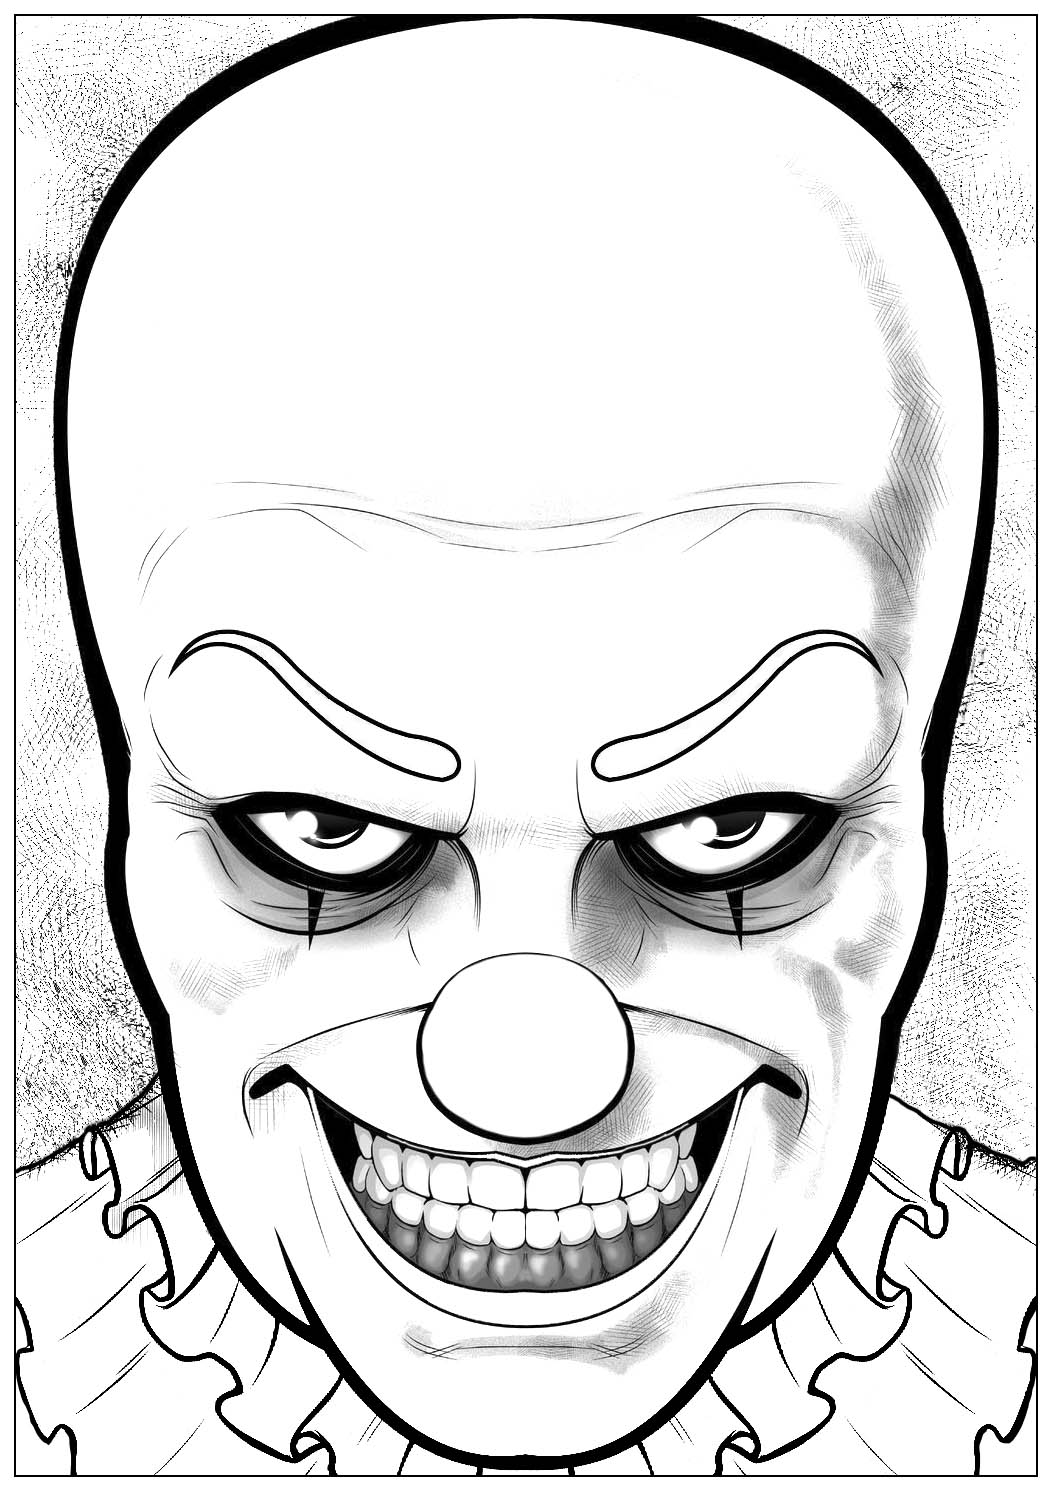 Would you dare to color this horrible Pennywise, the clown from 'It' ?